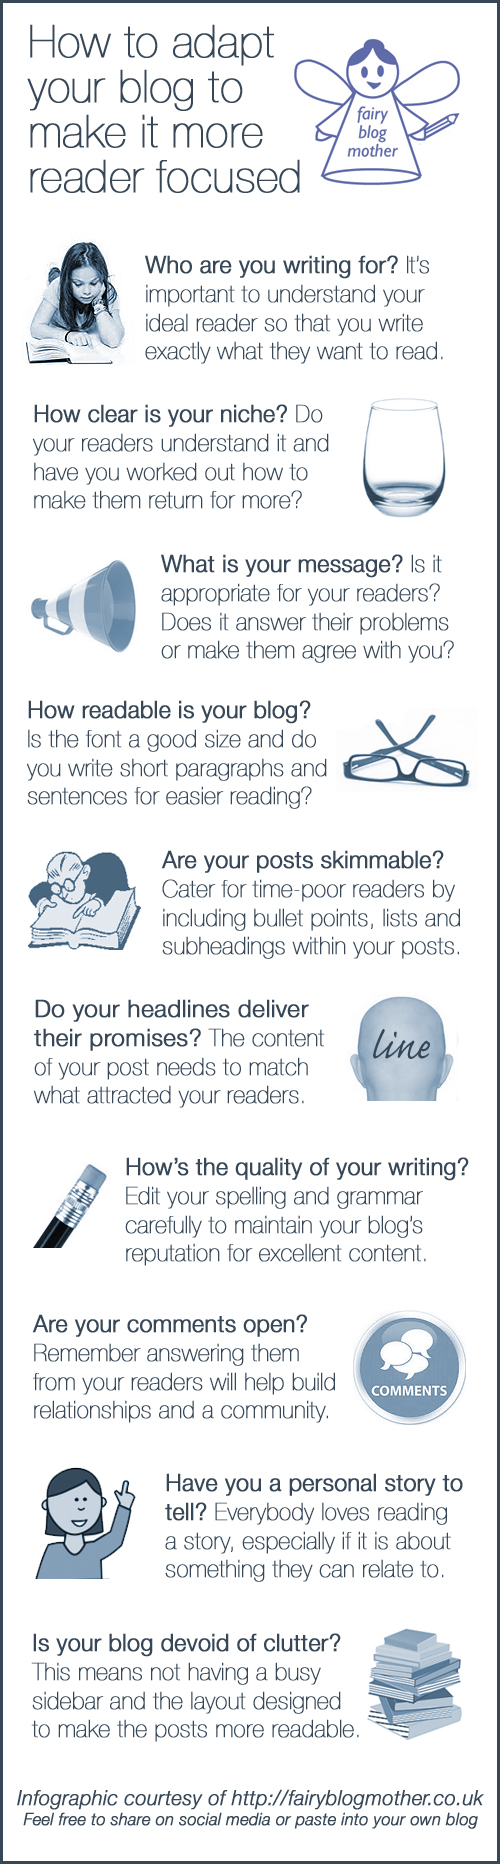 How to make your blog more attractive to your ideal reader